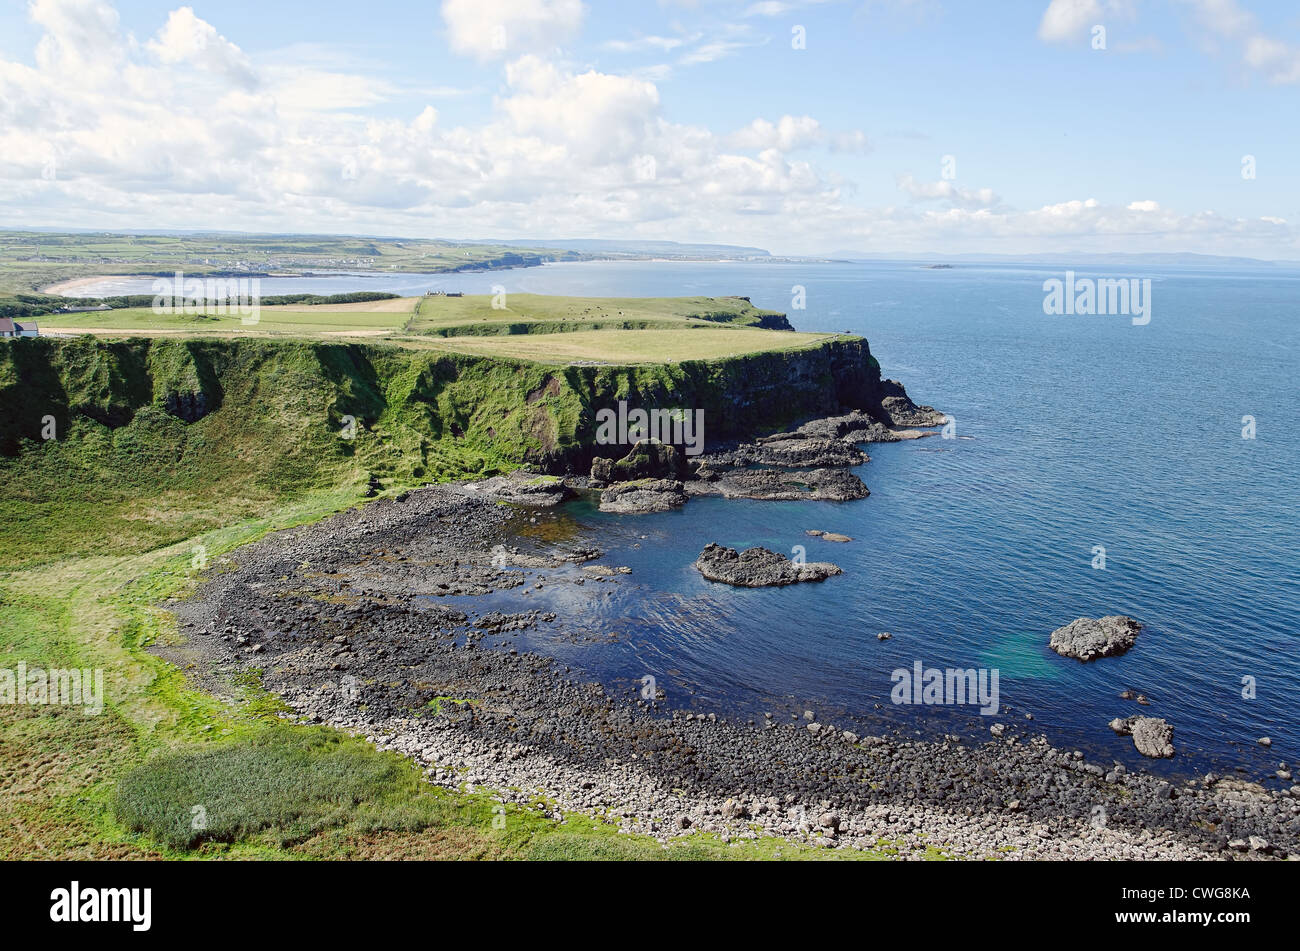 The Giants Causeway in County Antrim, Northern Ireland - Stock Image